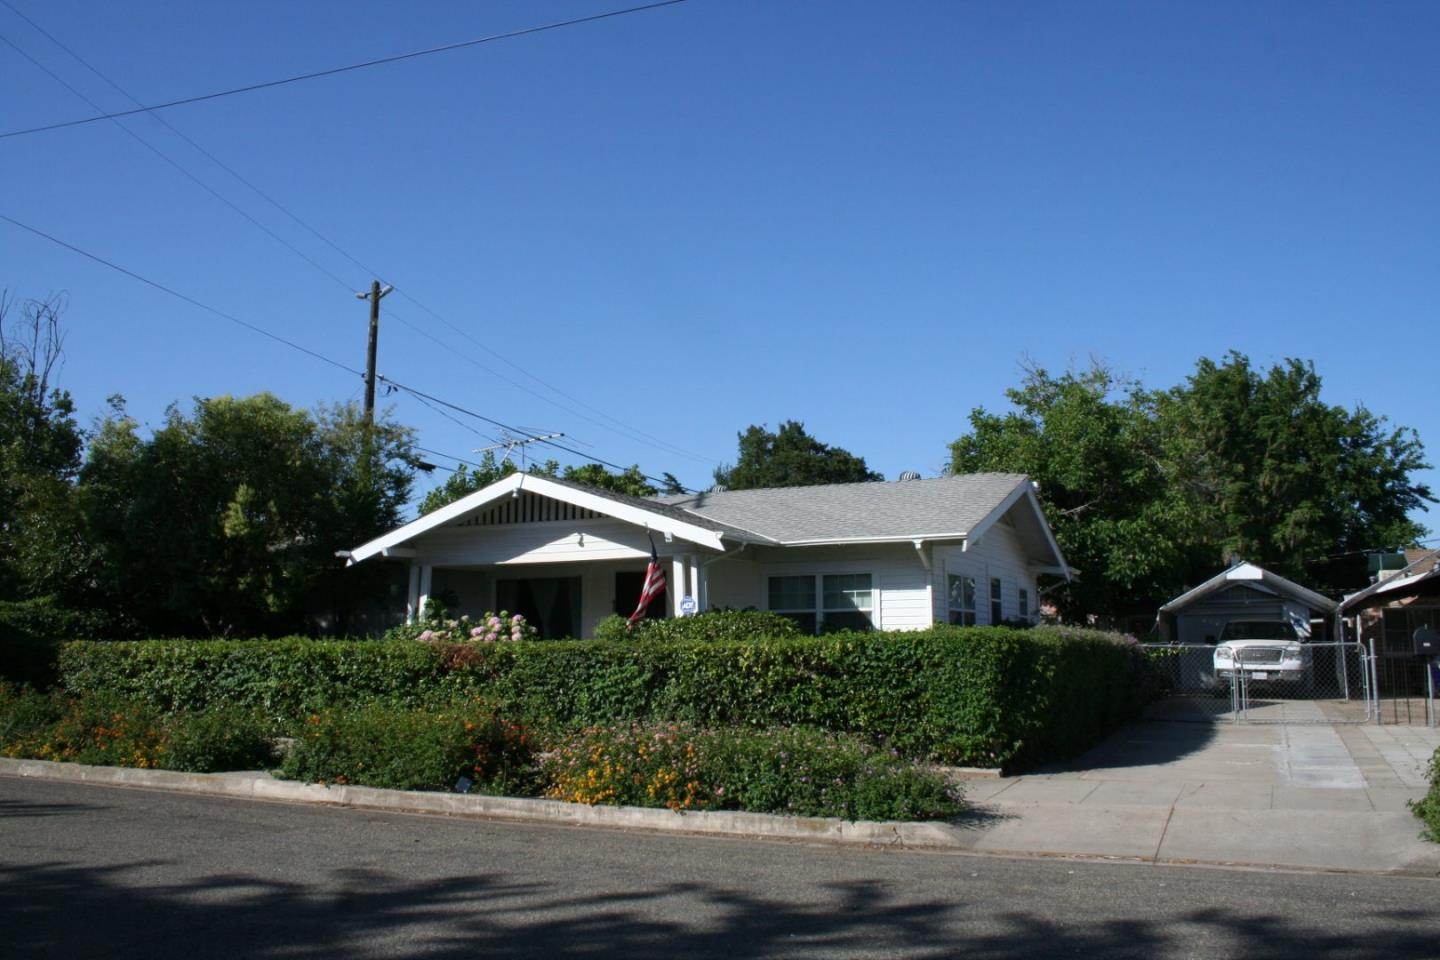 Single Family Home for Sale at 435 N 6th Street Chowchilla, California 93610 United States